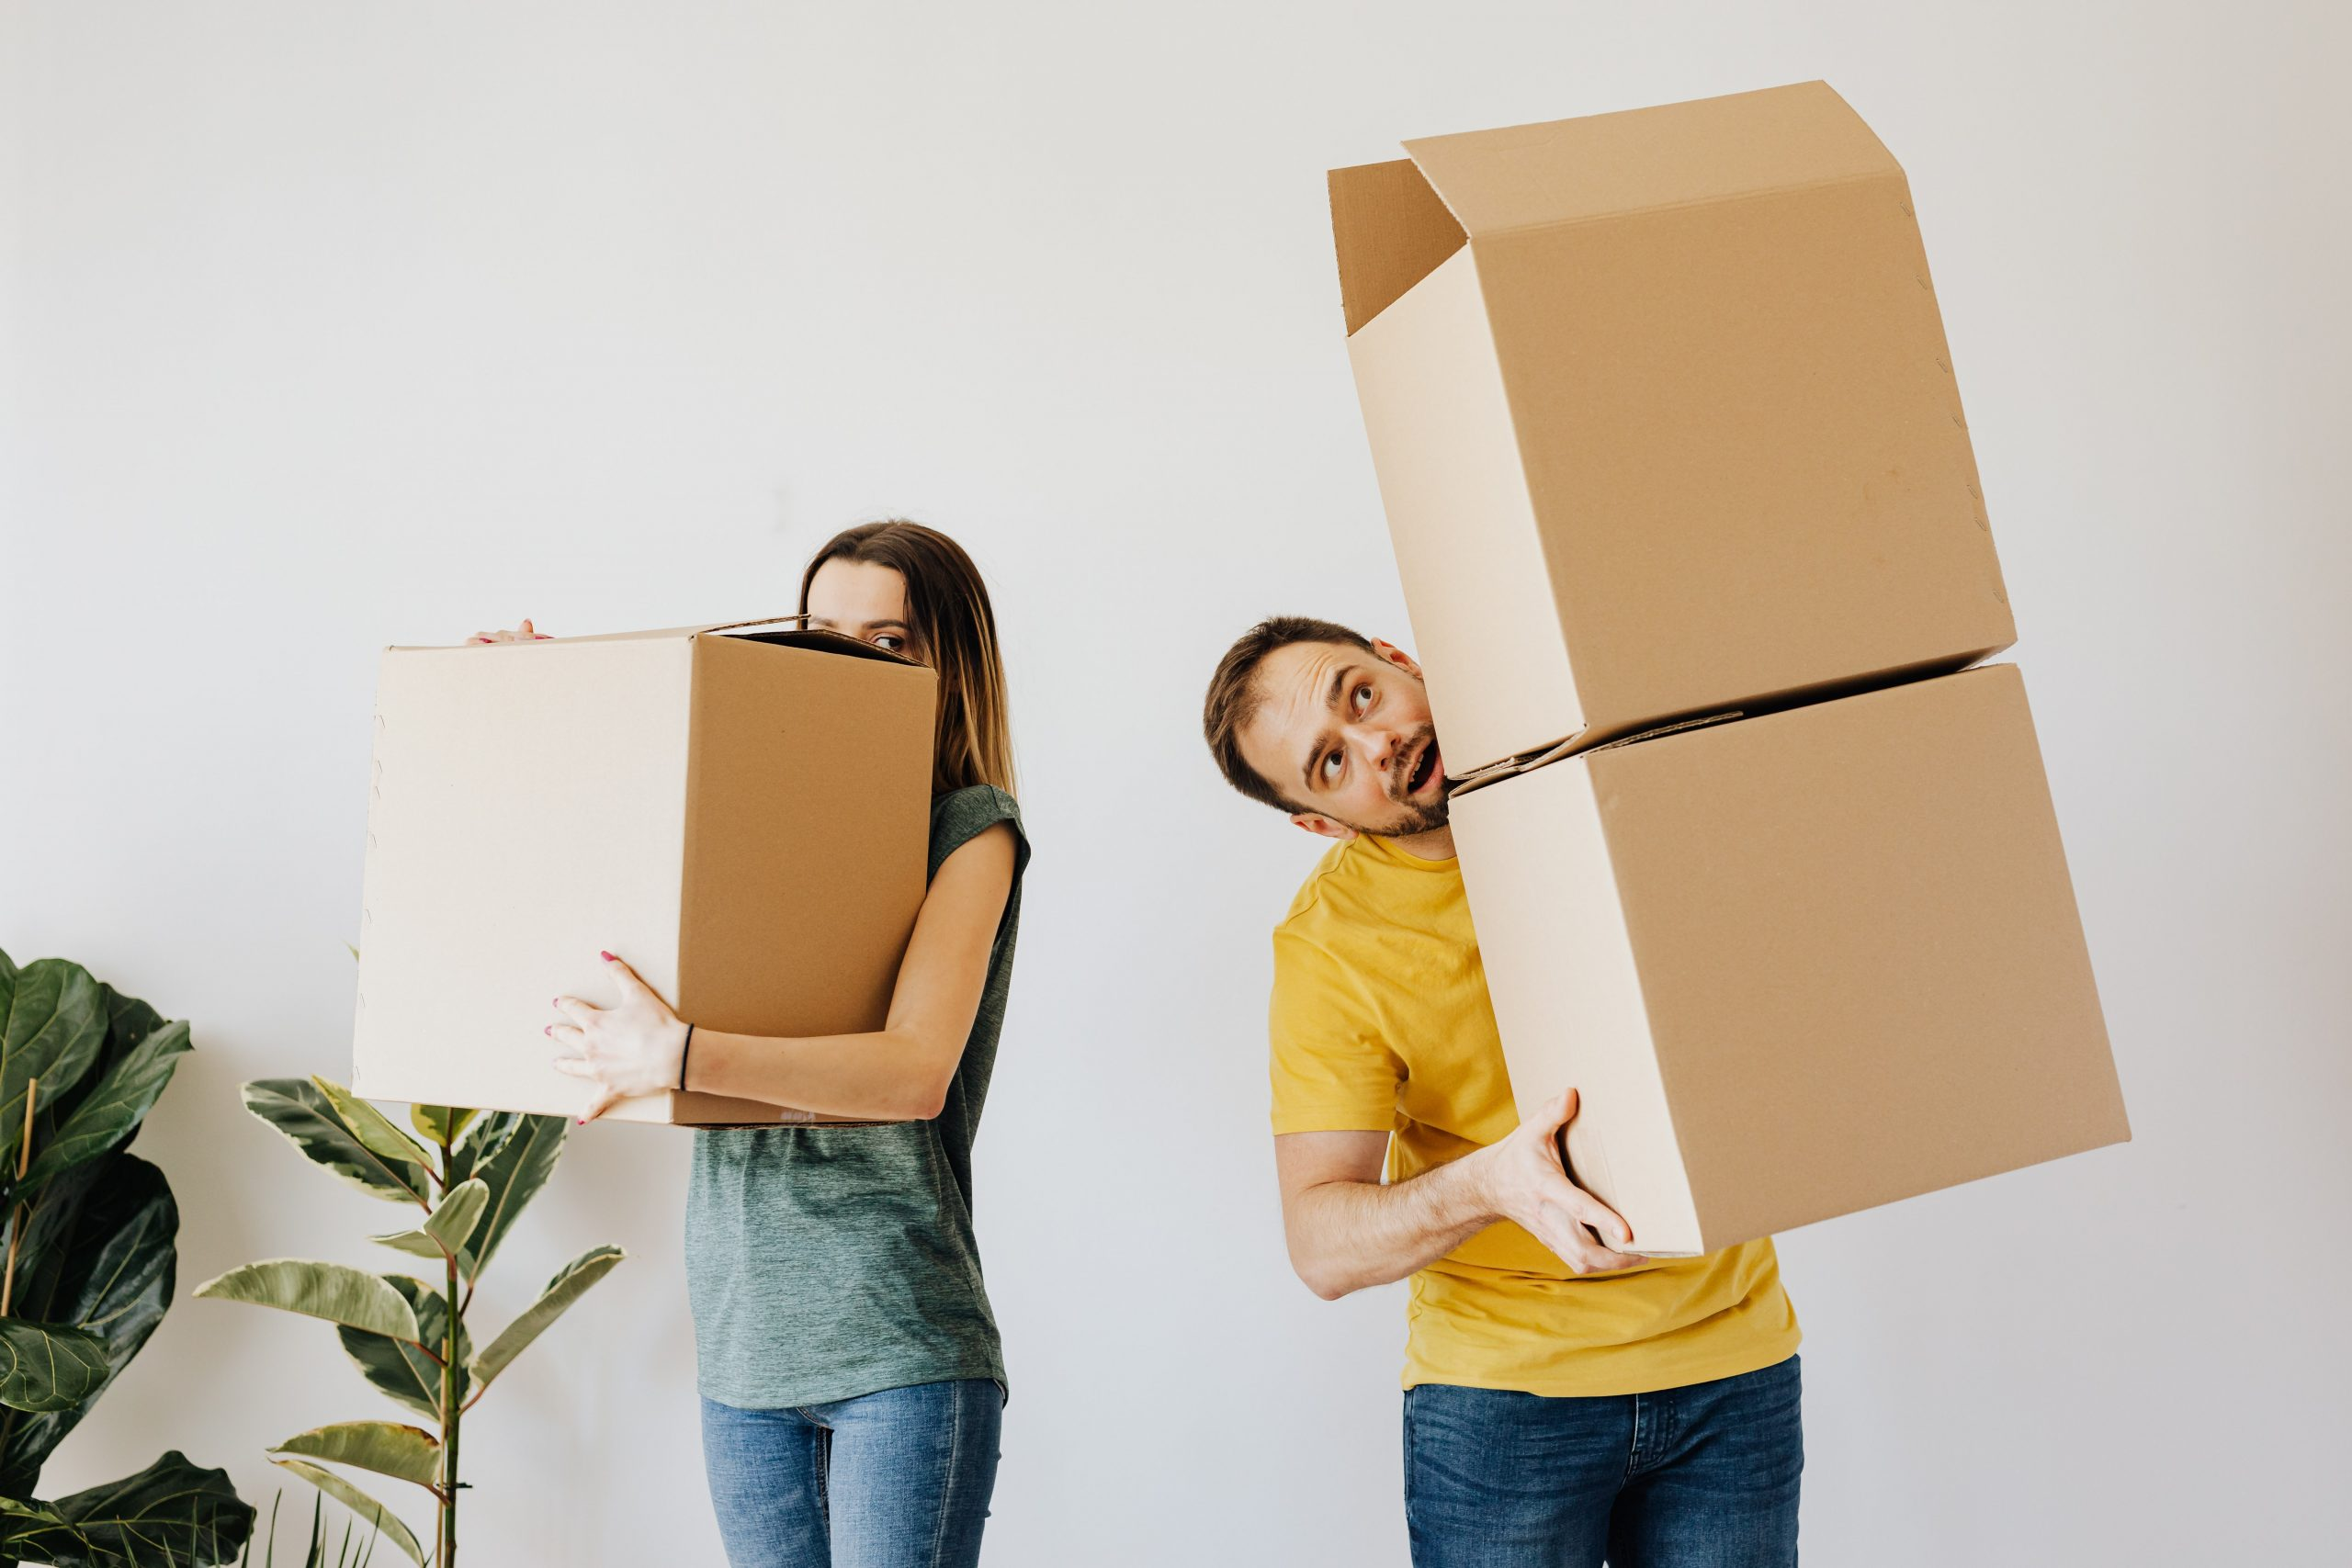 Where to find cheap packing supplies in Denver?